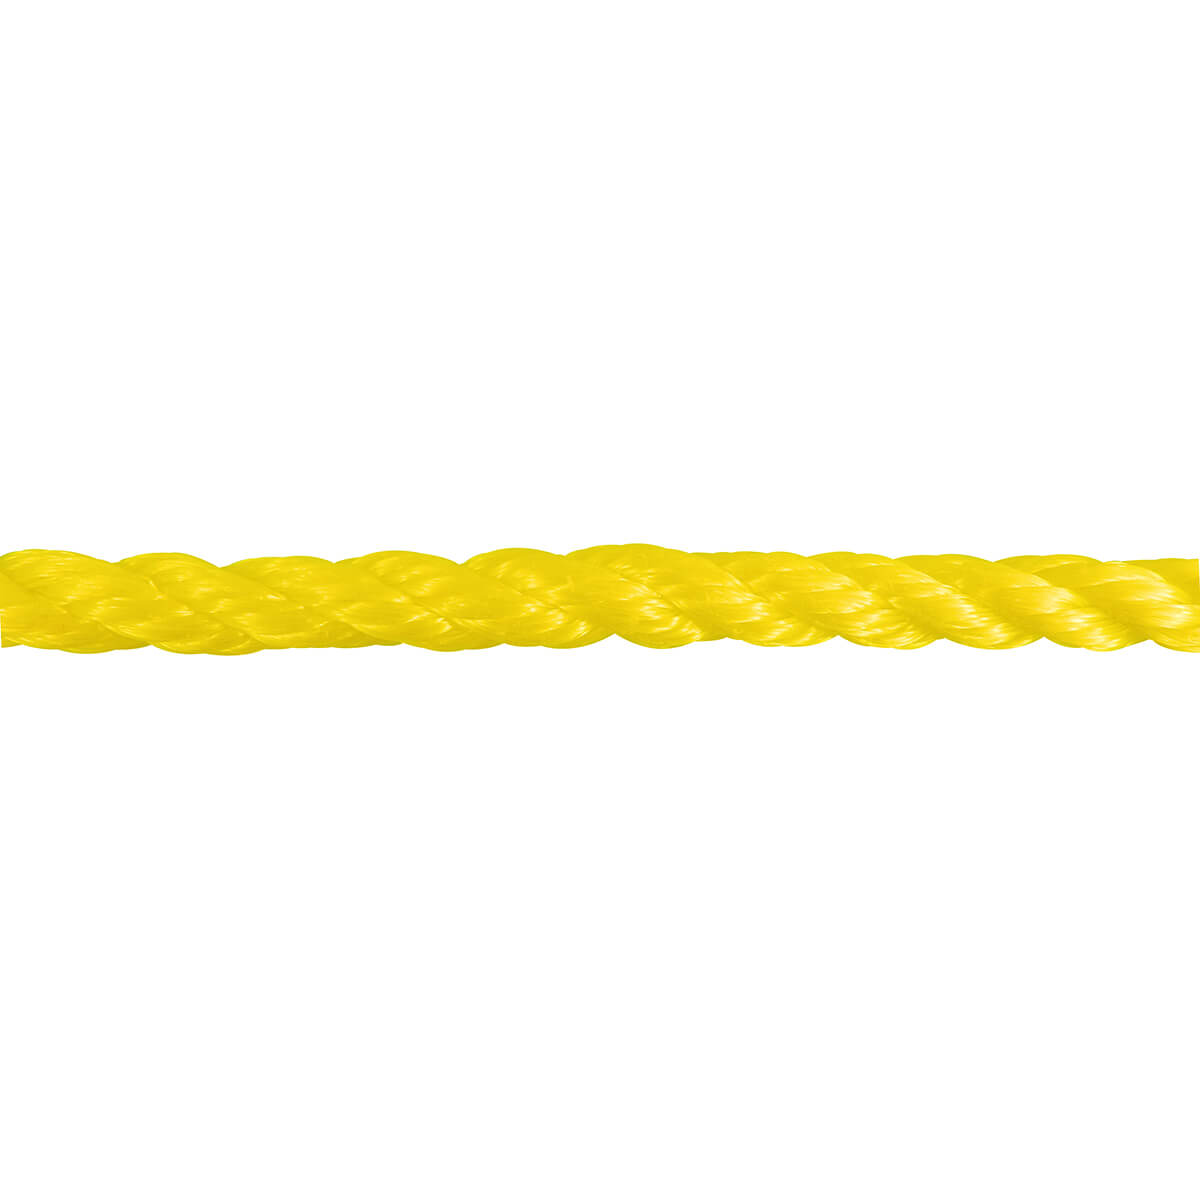 "Polypropylene Twisted Rope - Yellow - 5/8"" (price per foot)"